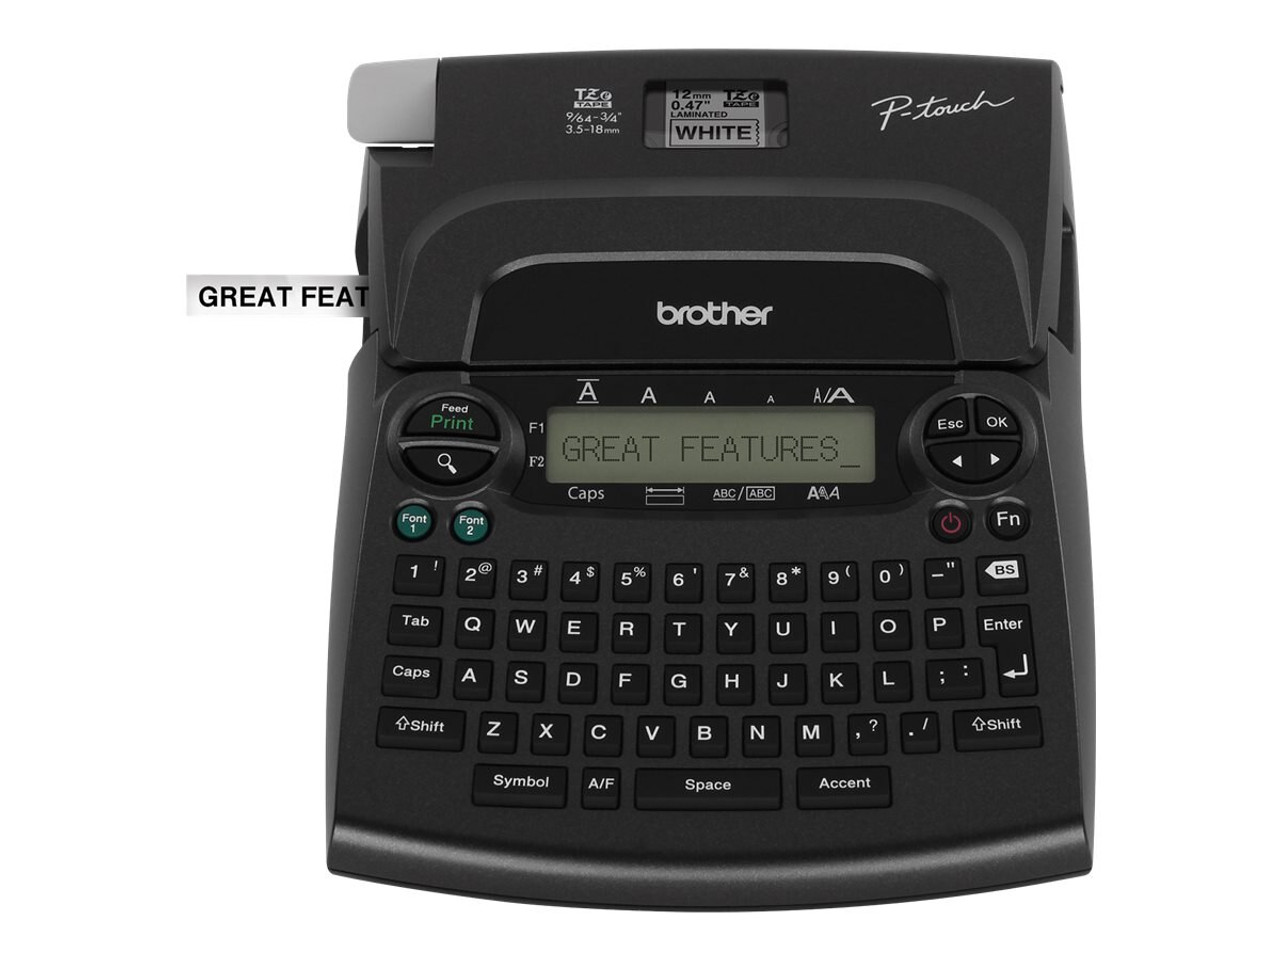 NEW Brother P-touch PT-1890w Labeler /& 2 Tapes Thermal Label Maker Printer